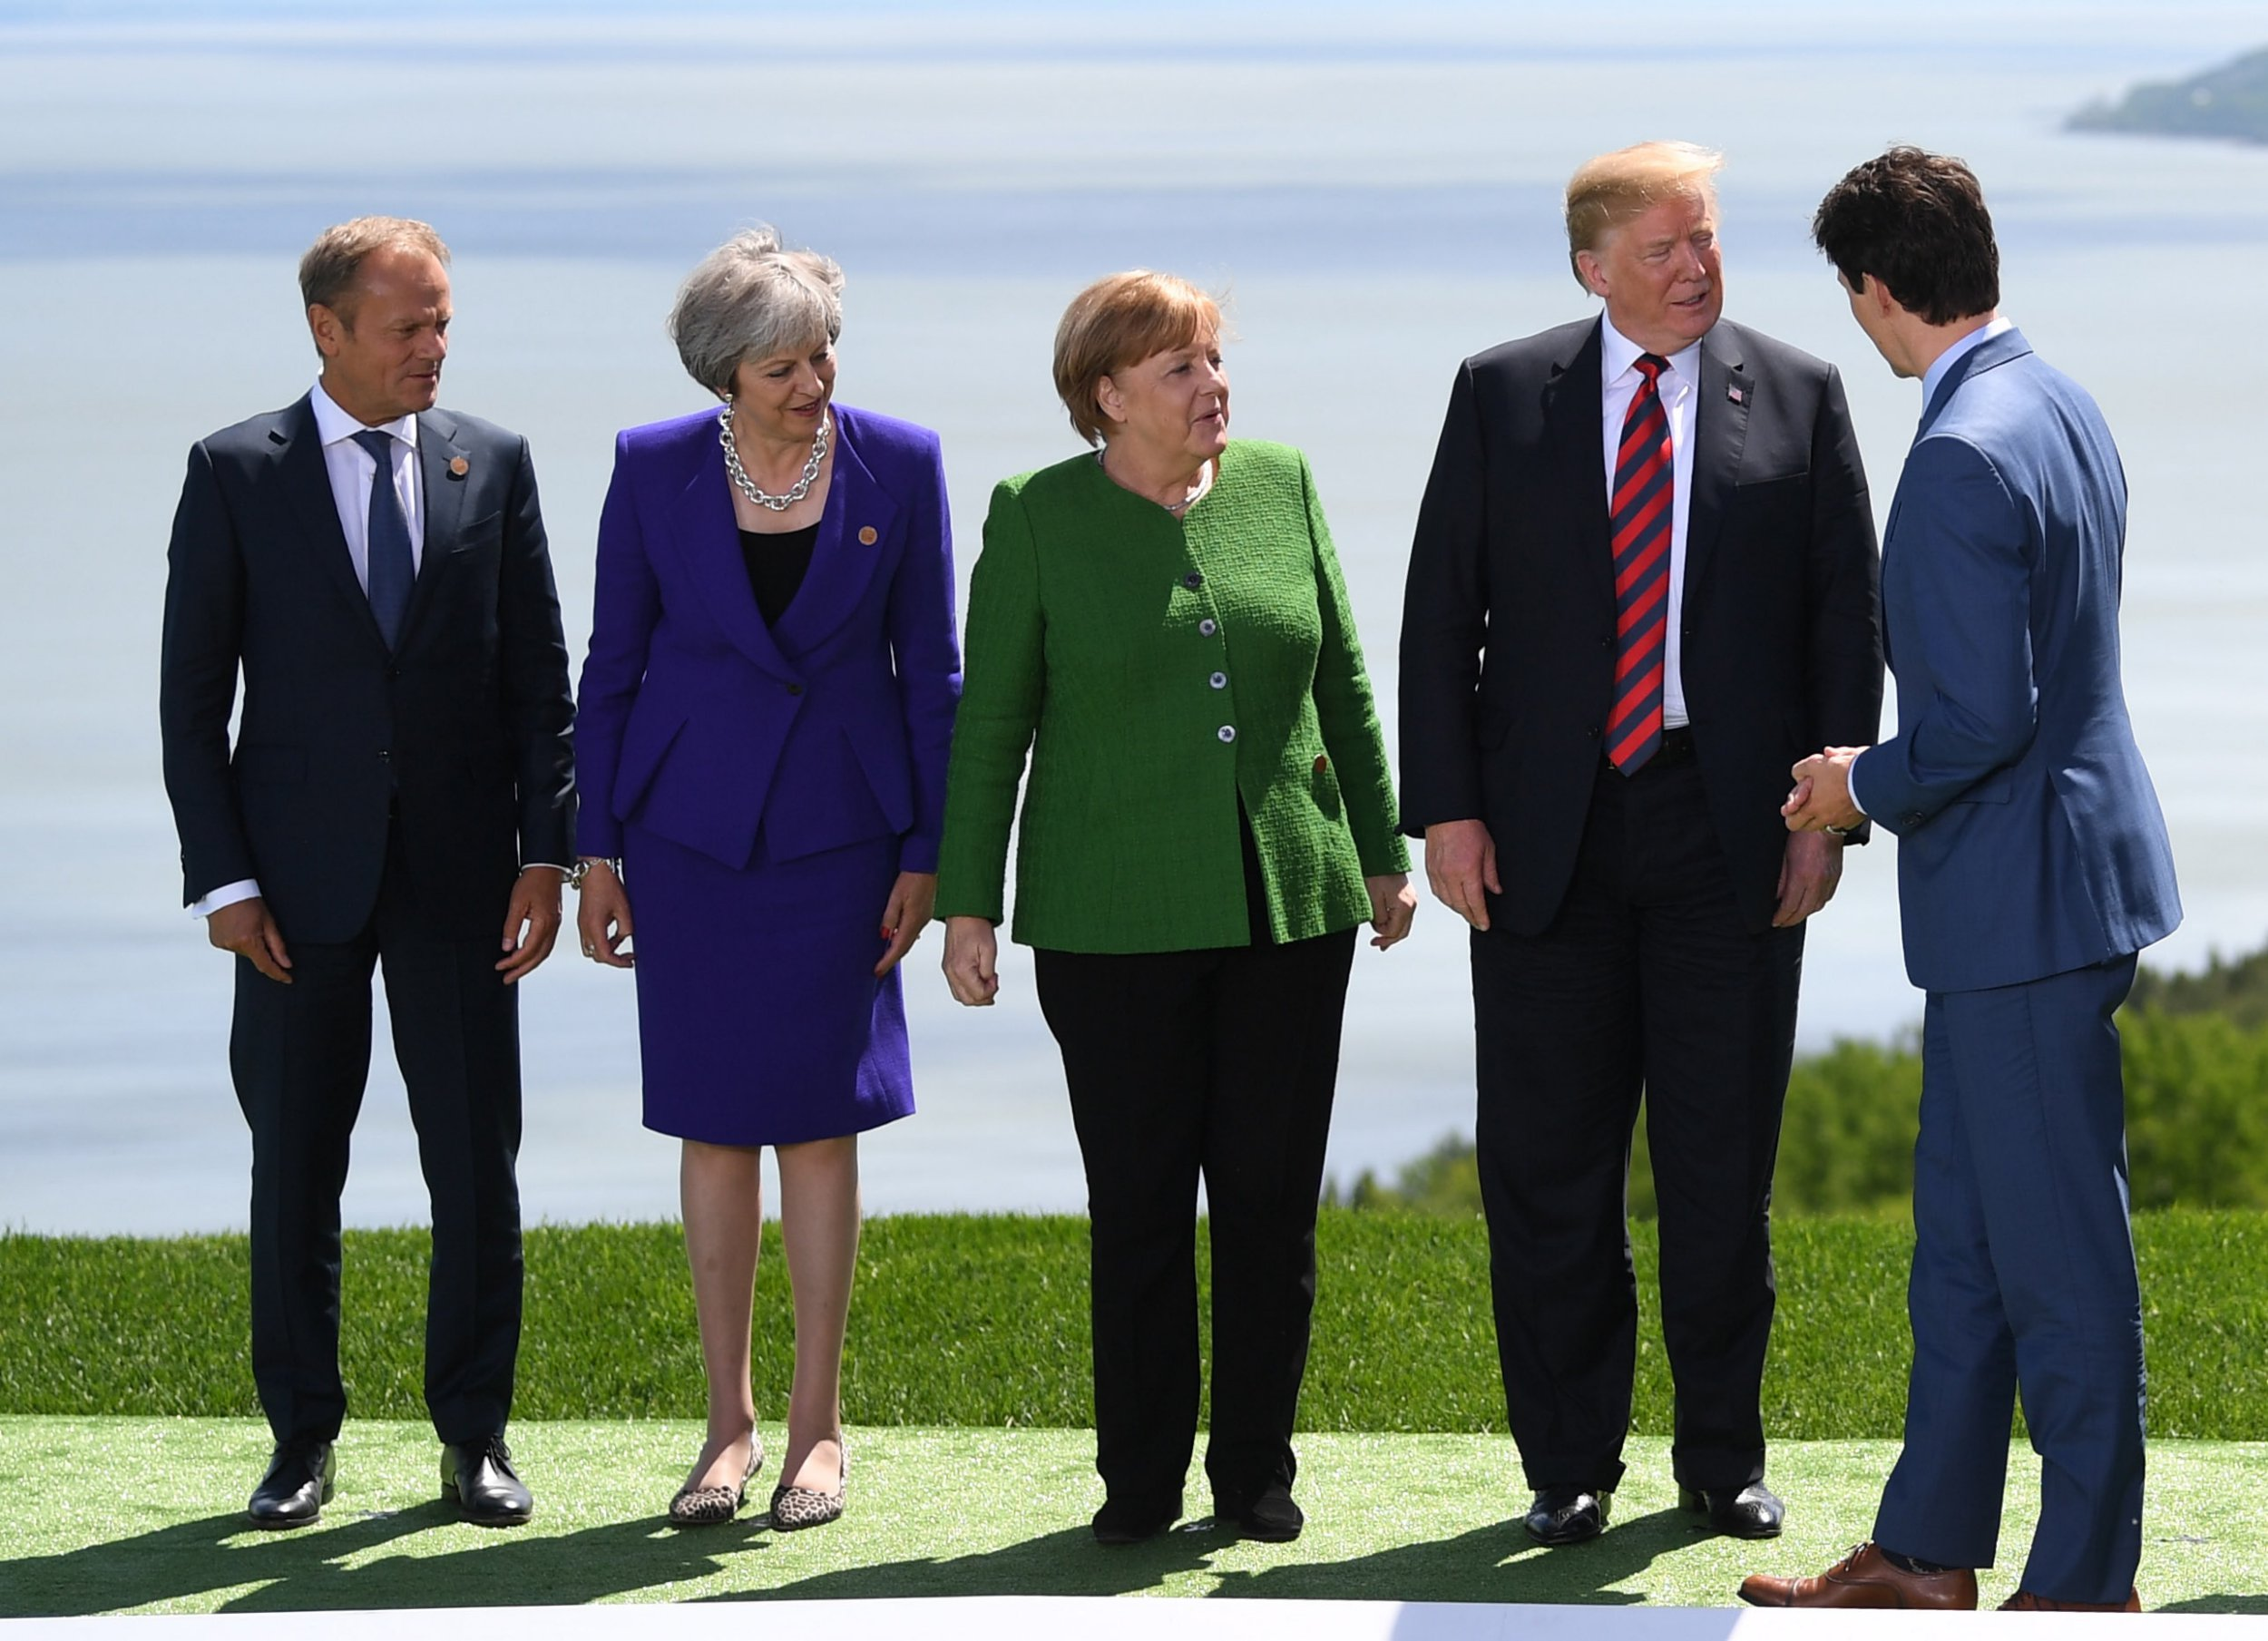 epa06795017 President of the European Council Donald Tusk (L), Britain's Prime Minister Theresa May (2nd L), Germany's Chancellor Angela Merkel (C) and U.S. President Donald Tusk (2nd R) and Canadian Prime Minister Justin Trudeau (R) interact before posing for the Family Portrait at the G7 summit in Charlevoix in Canada 08 June 2018. The G7 Summit runs from 8 to 9 June in Charlevoix, Canada. EPA/NEIL HALL / POOL